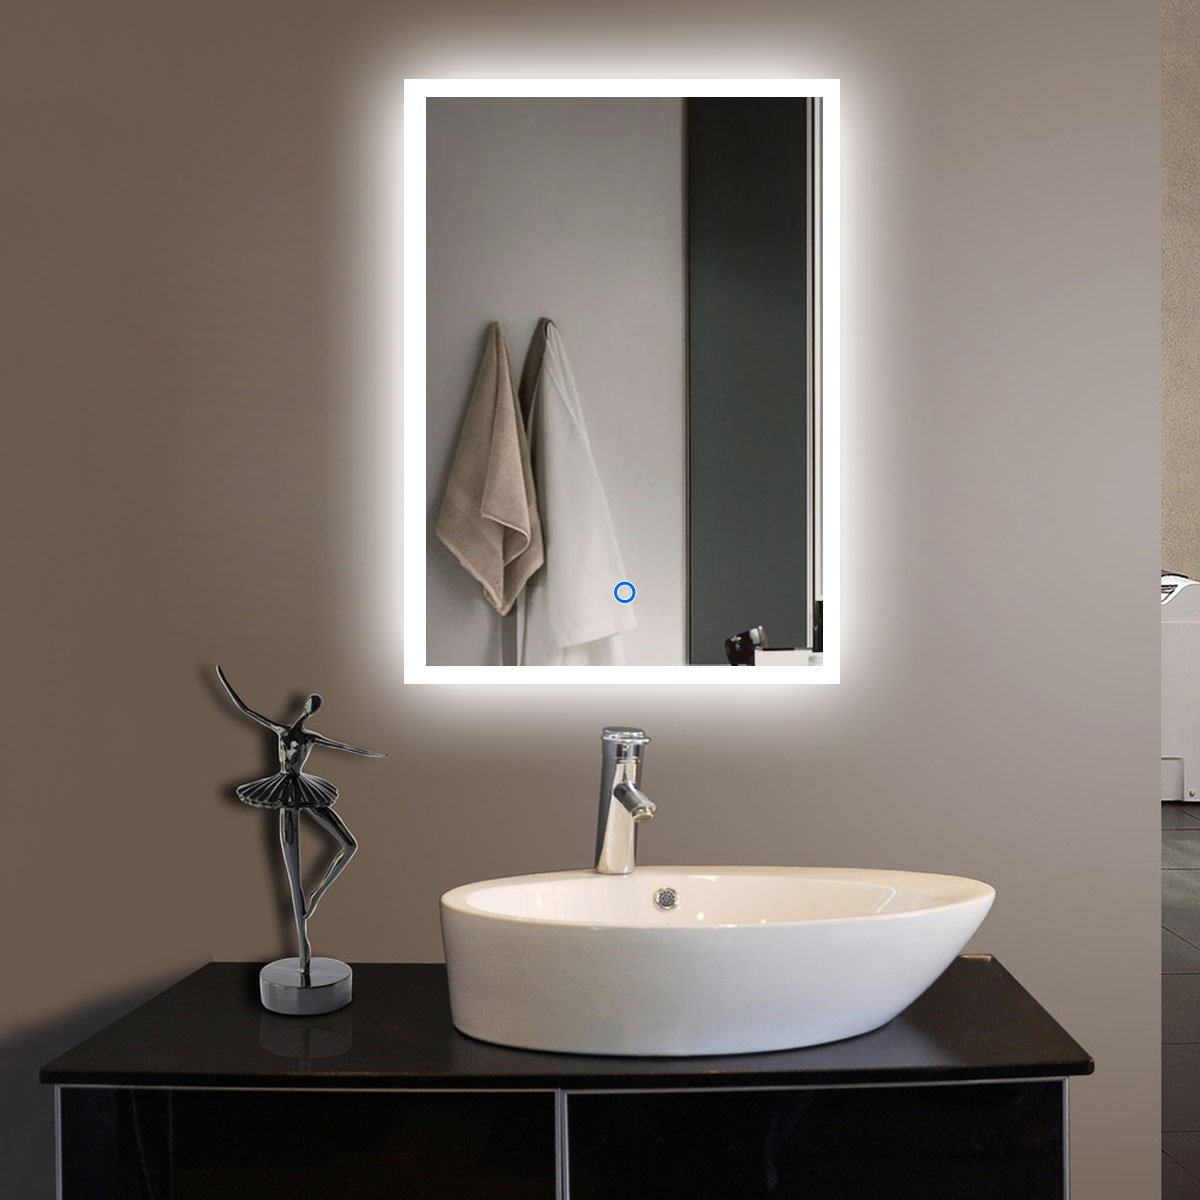 Traveller Location: 20 x 28 in Vertical LED Bathroom Silvered Mirror with Touch  Button (N031-H): Home & Kitchen